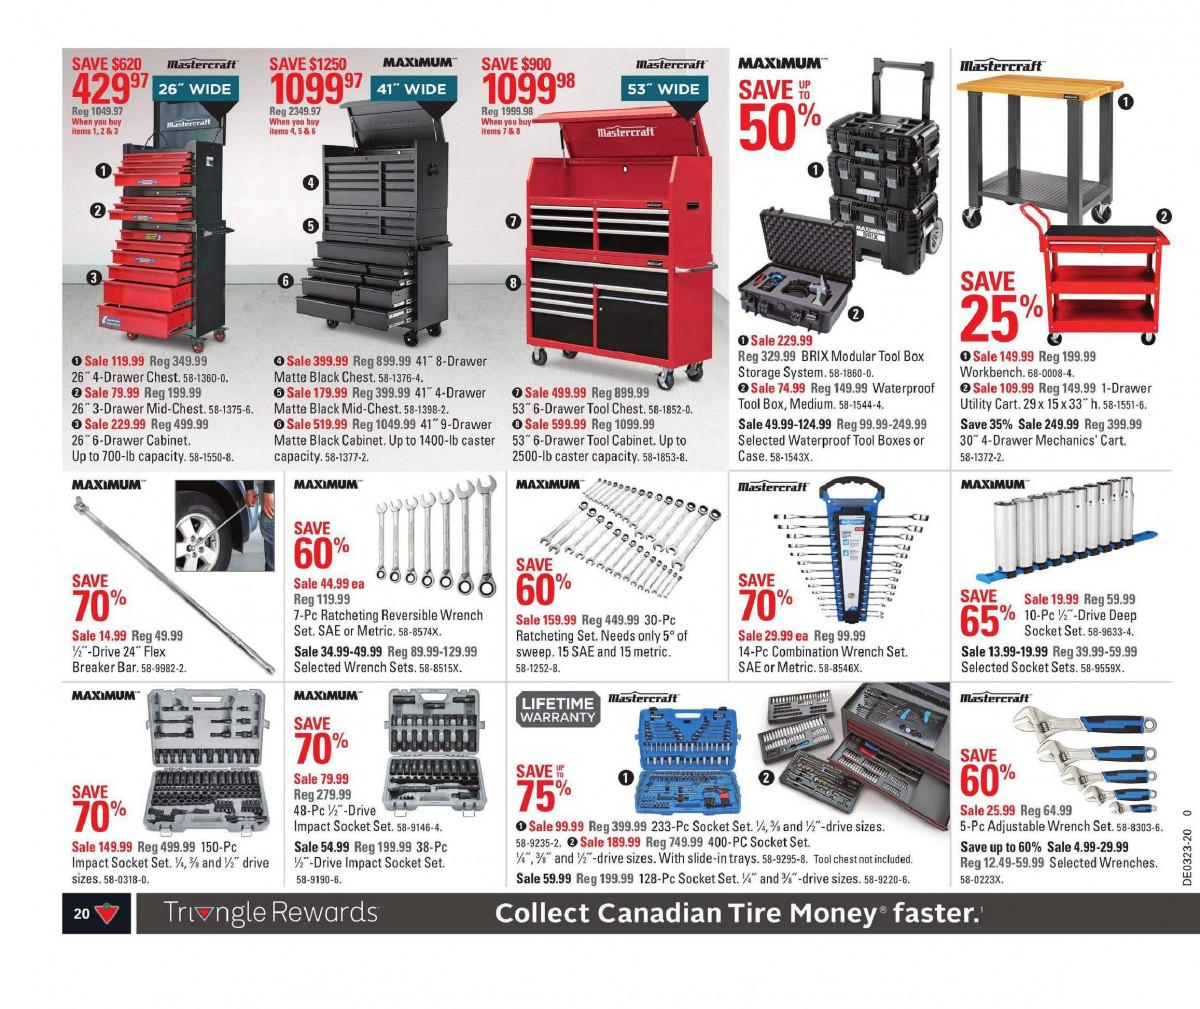 33 - Canadian Tire Flyer May 29 - June 4, 2020